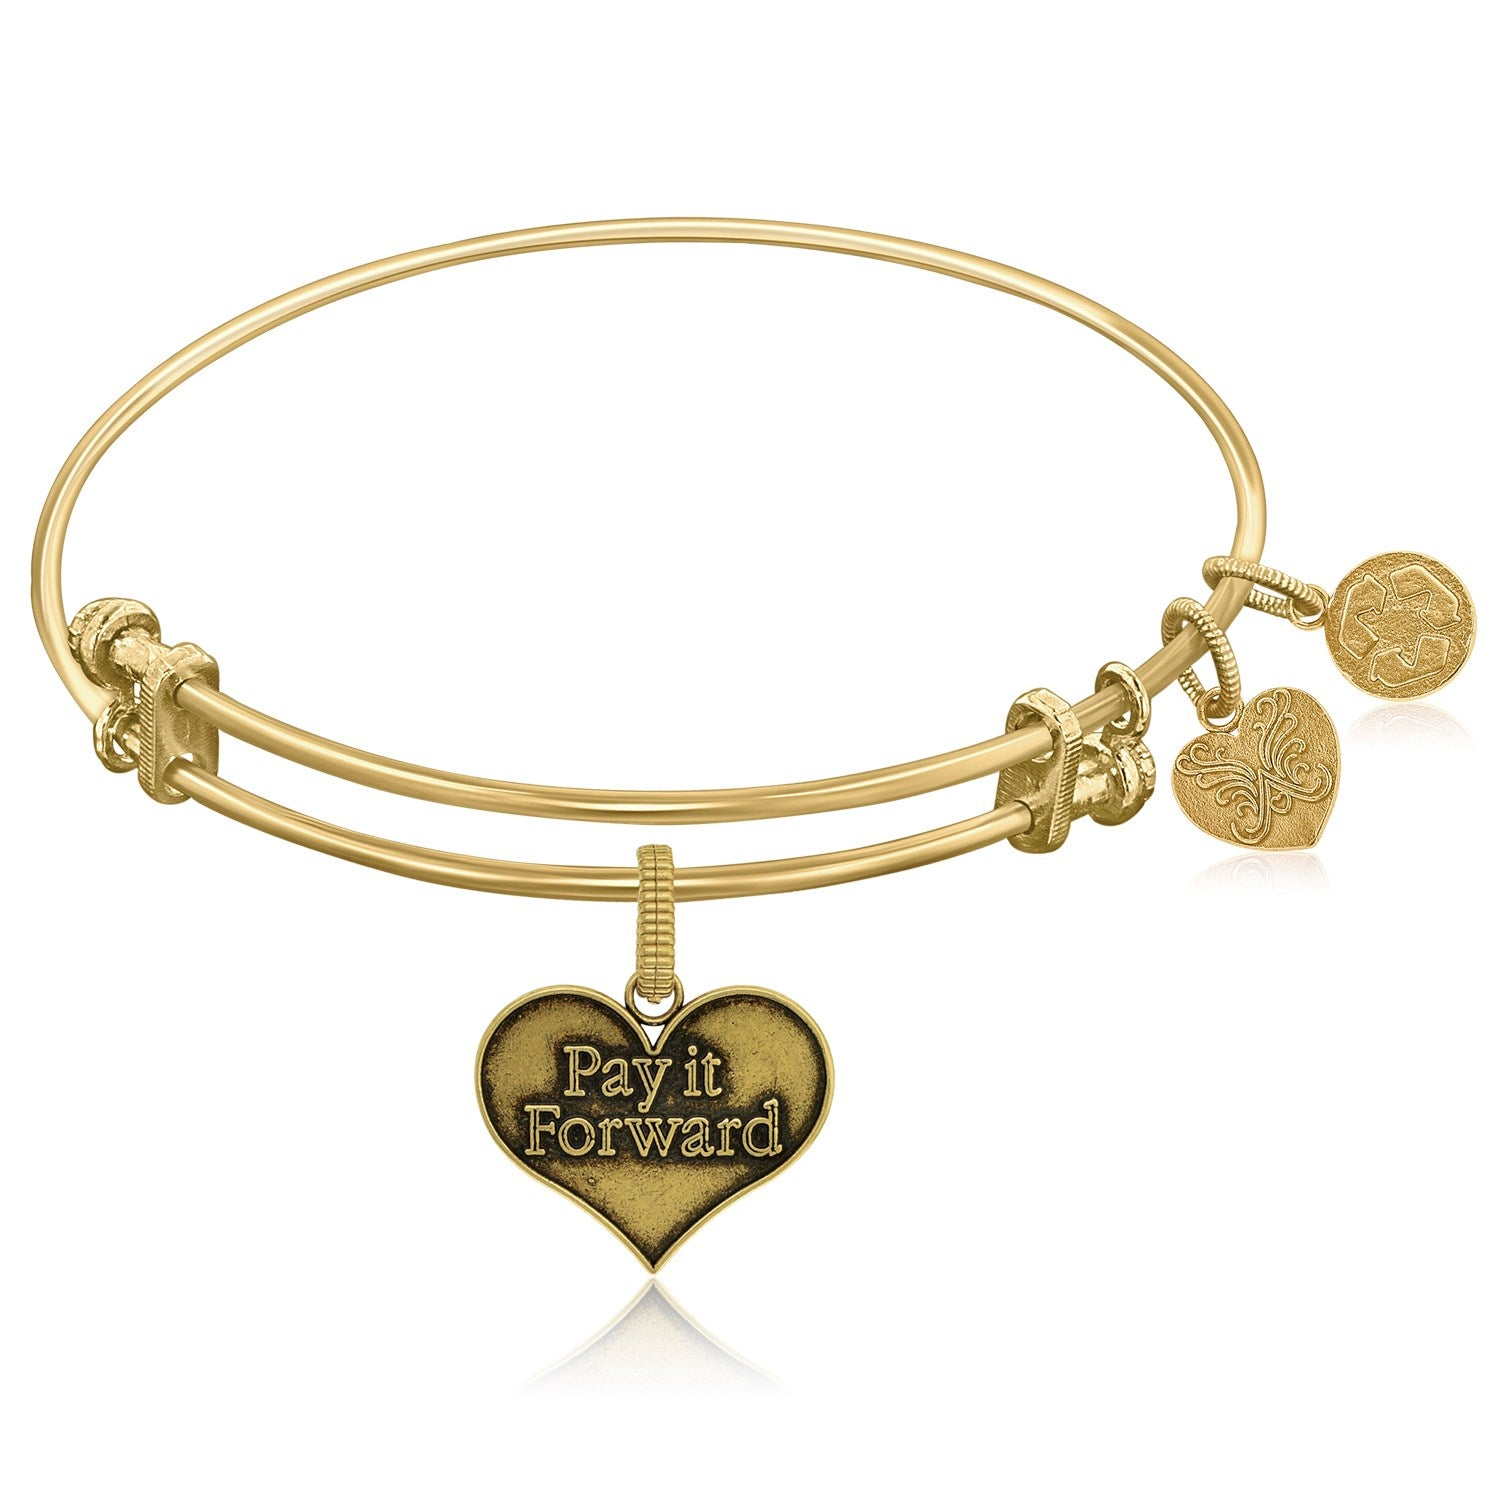 Expandable Yellow Tone Brass Bangle with Pay It Forward Symbol